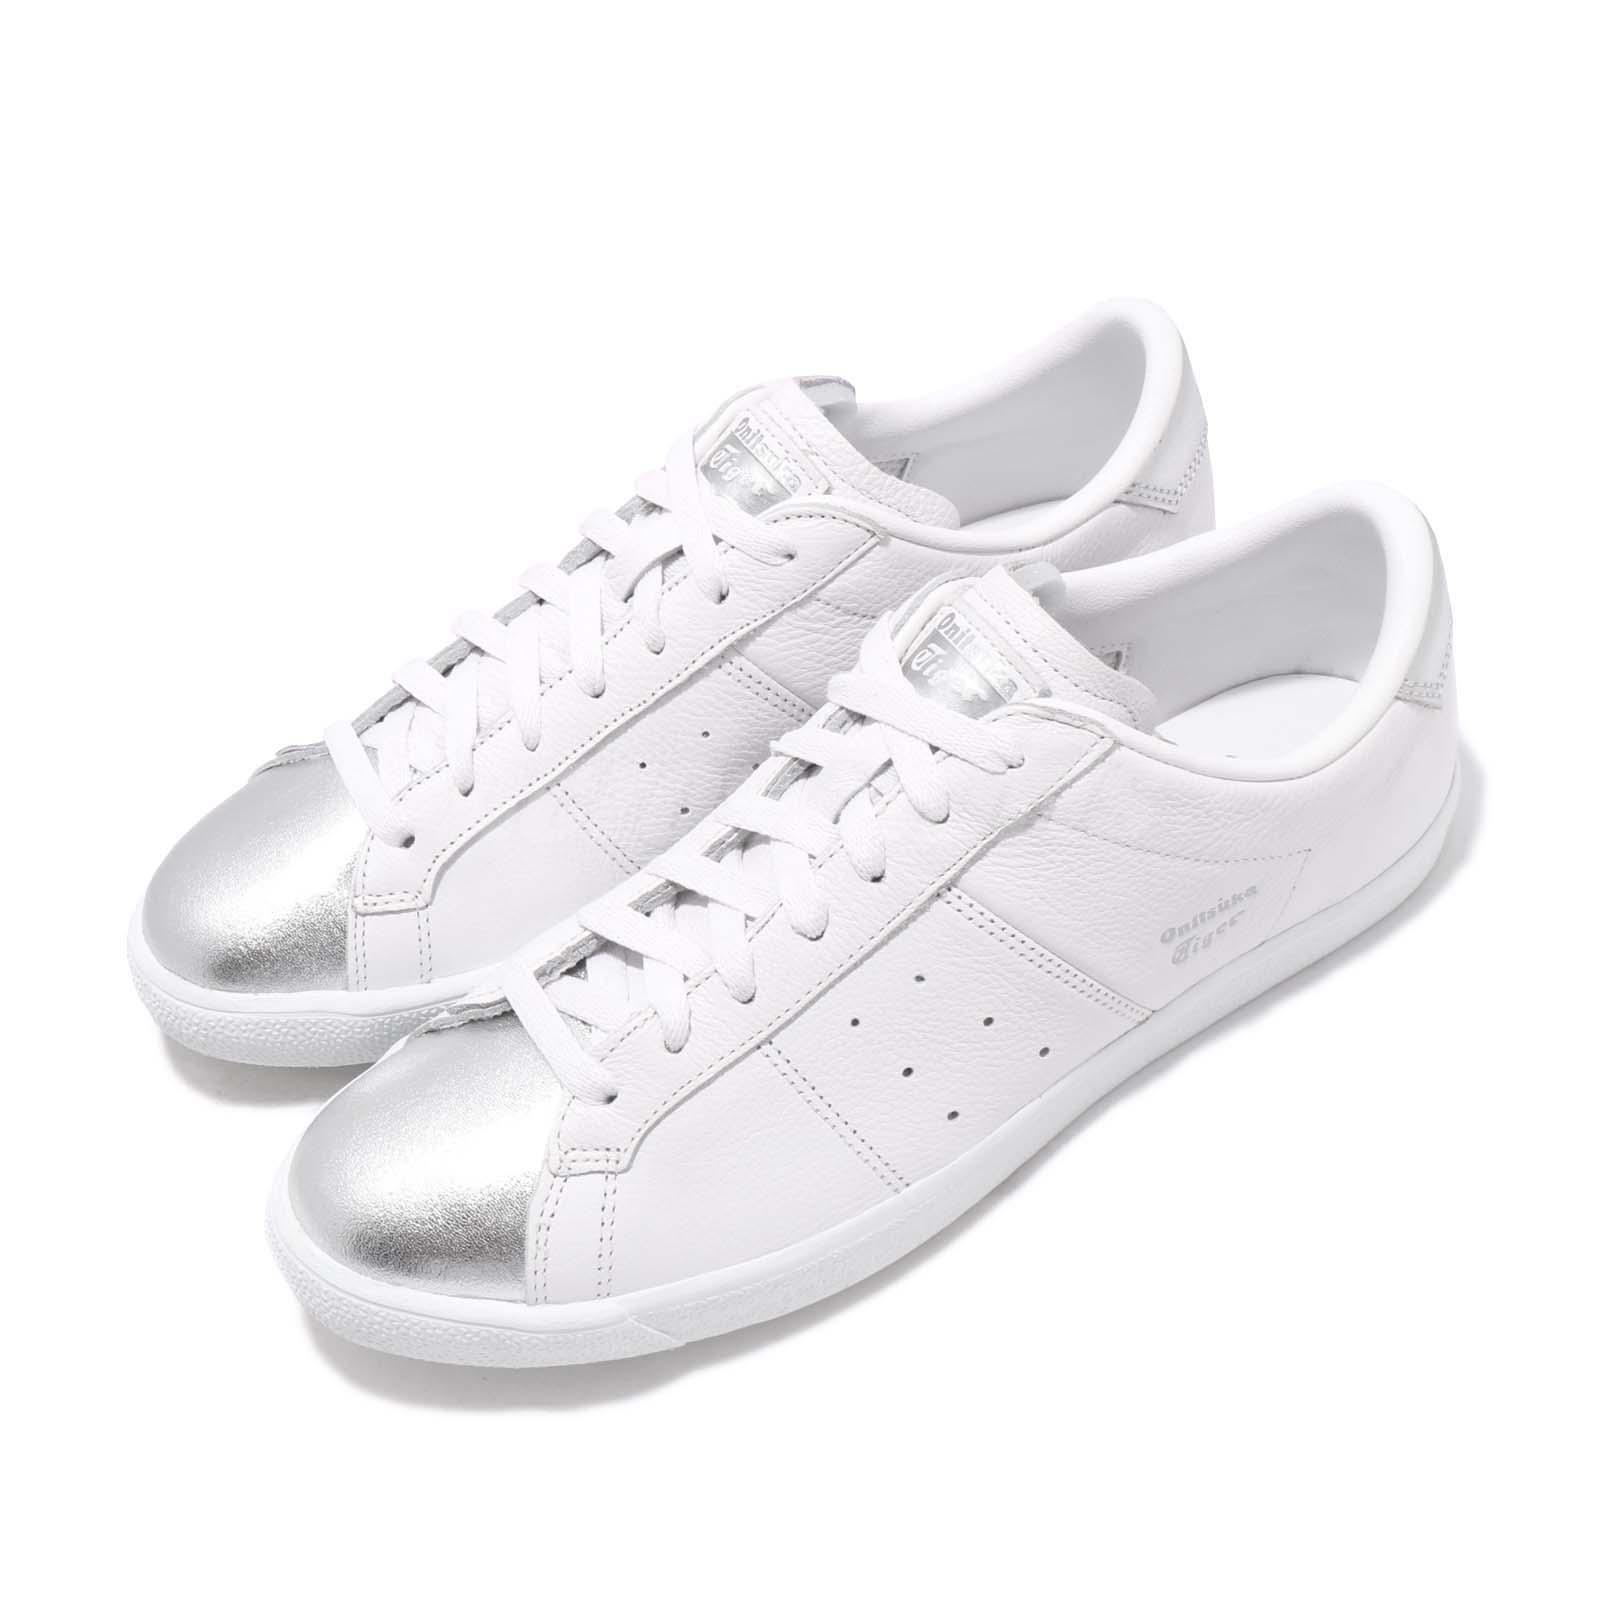 new concept 4eca5 bea2c Details about Asics Onitsuka Tiger Lawnship White Silver Men Casual Shoes  Sneakers D518K-0193